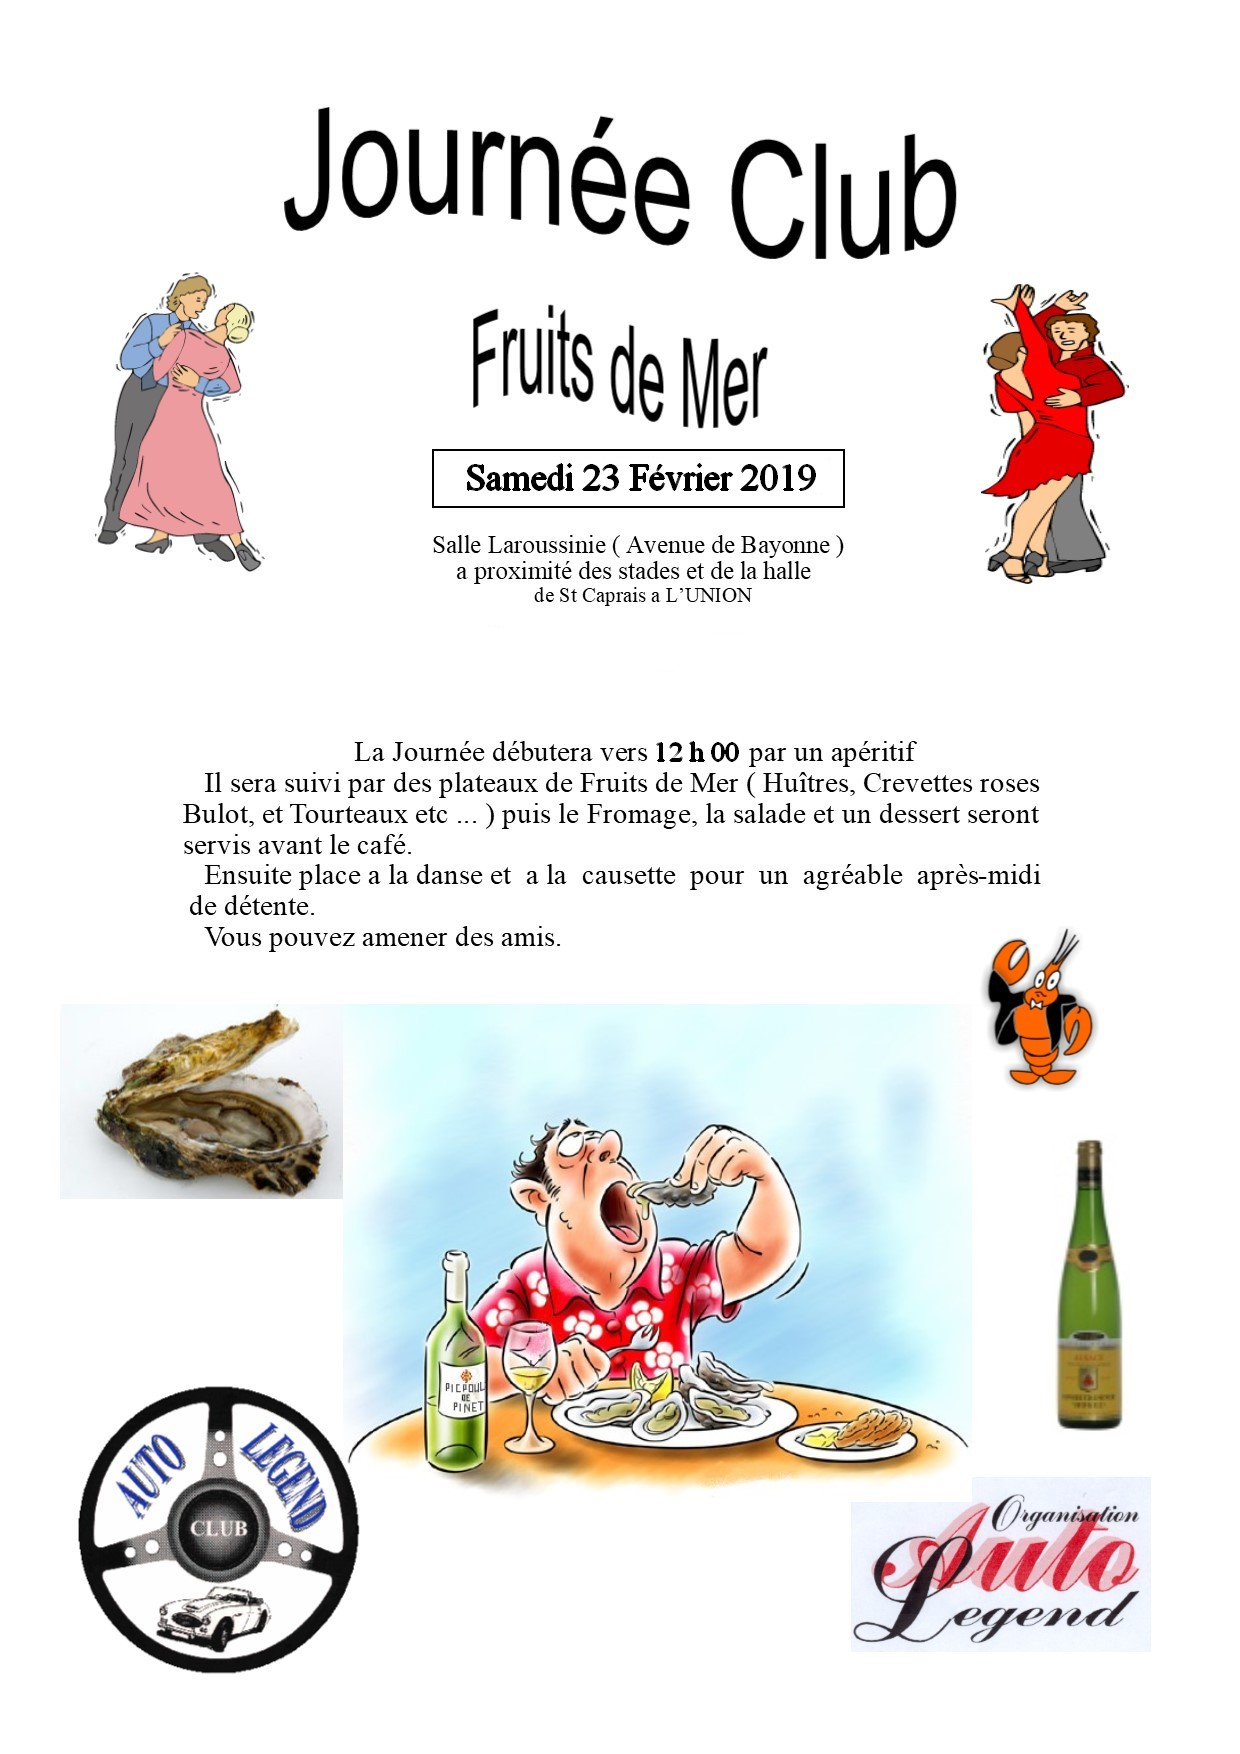 Club a l fruits de mer 2019